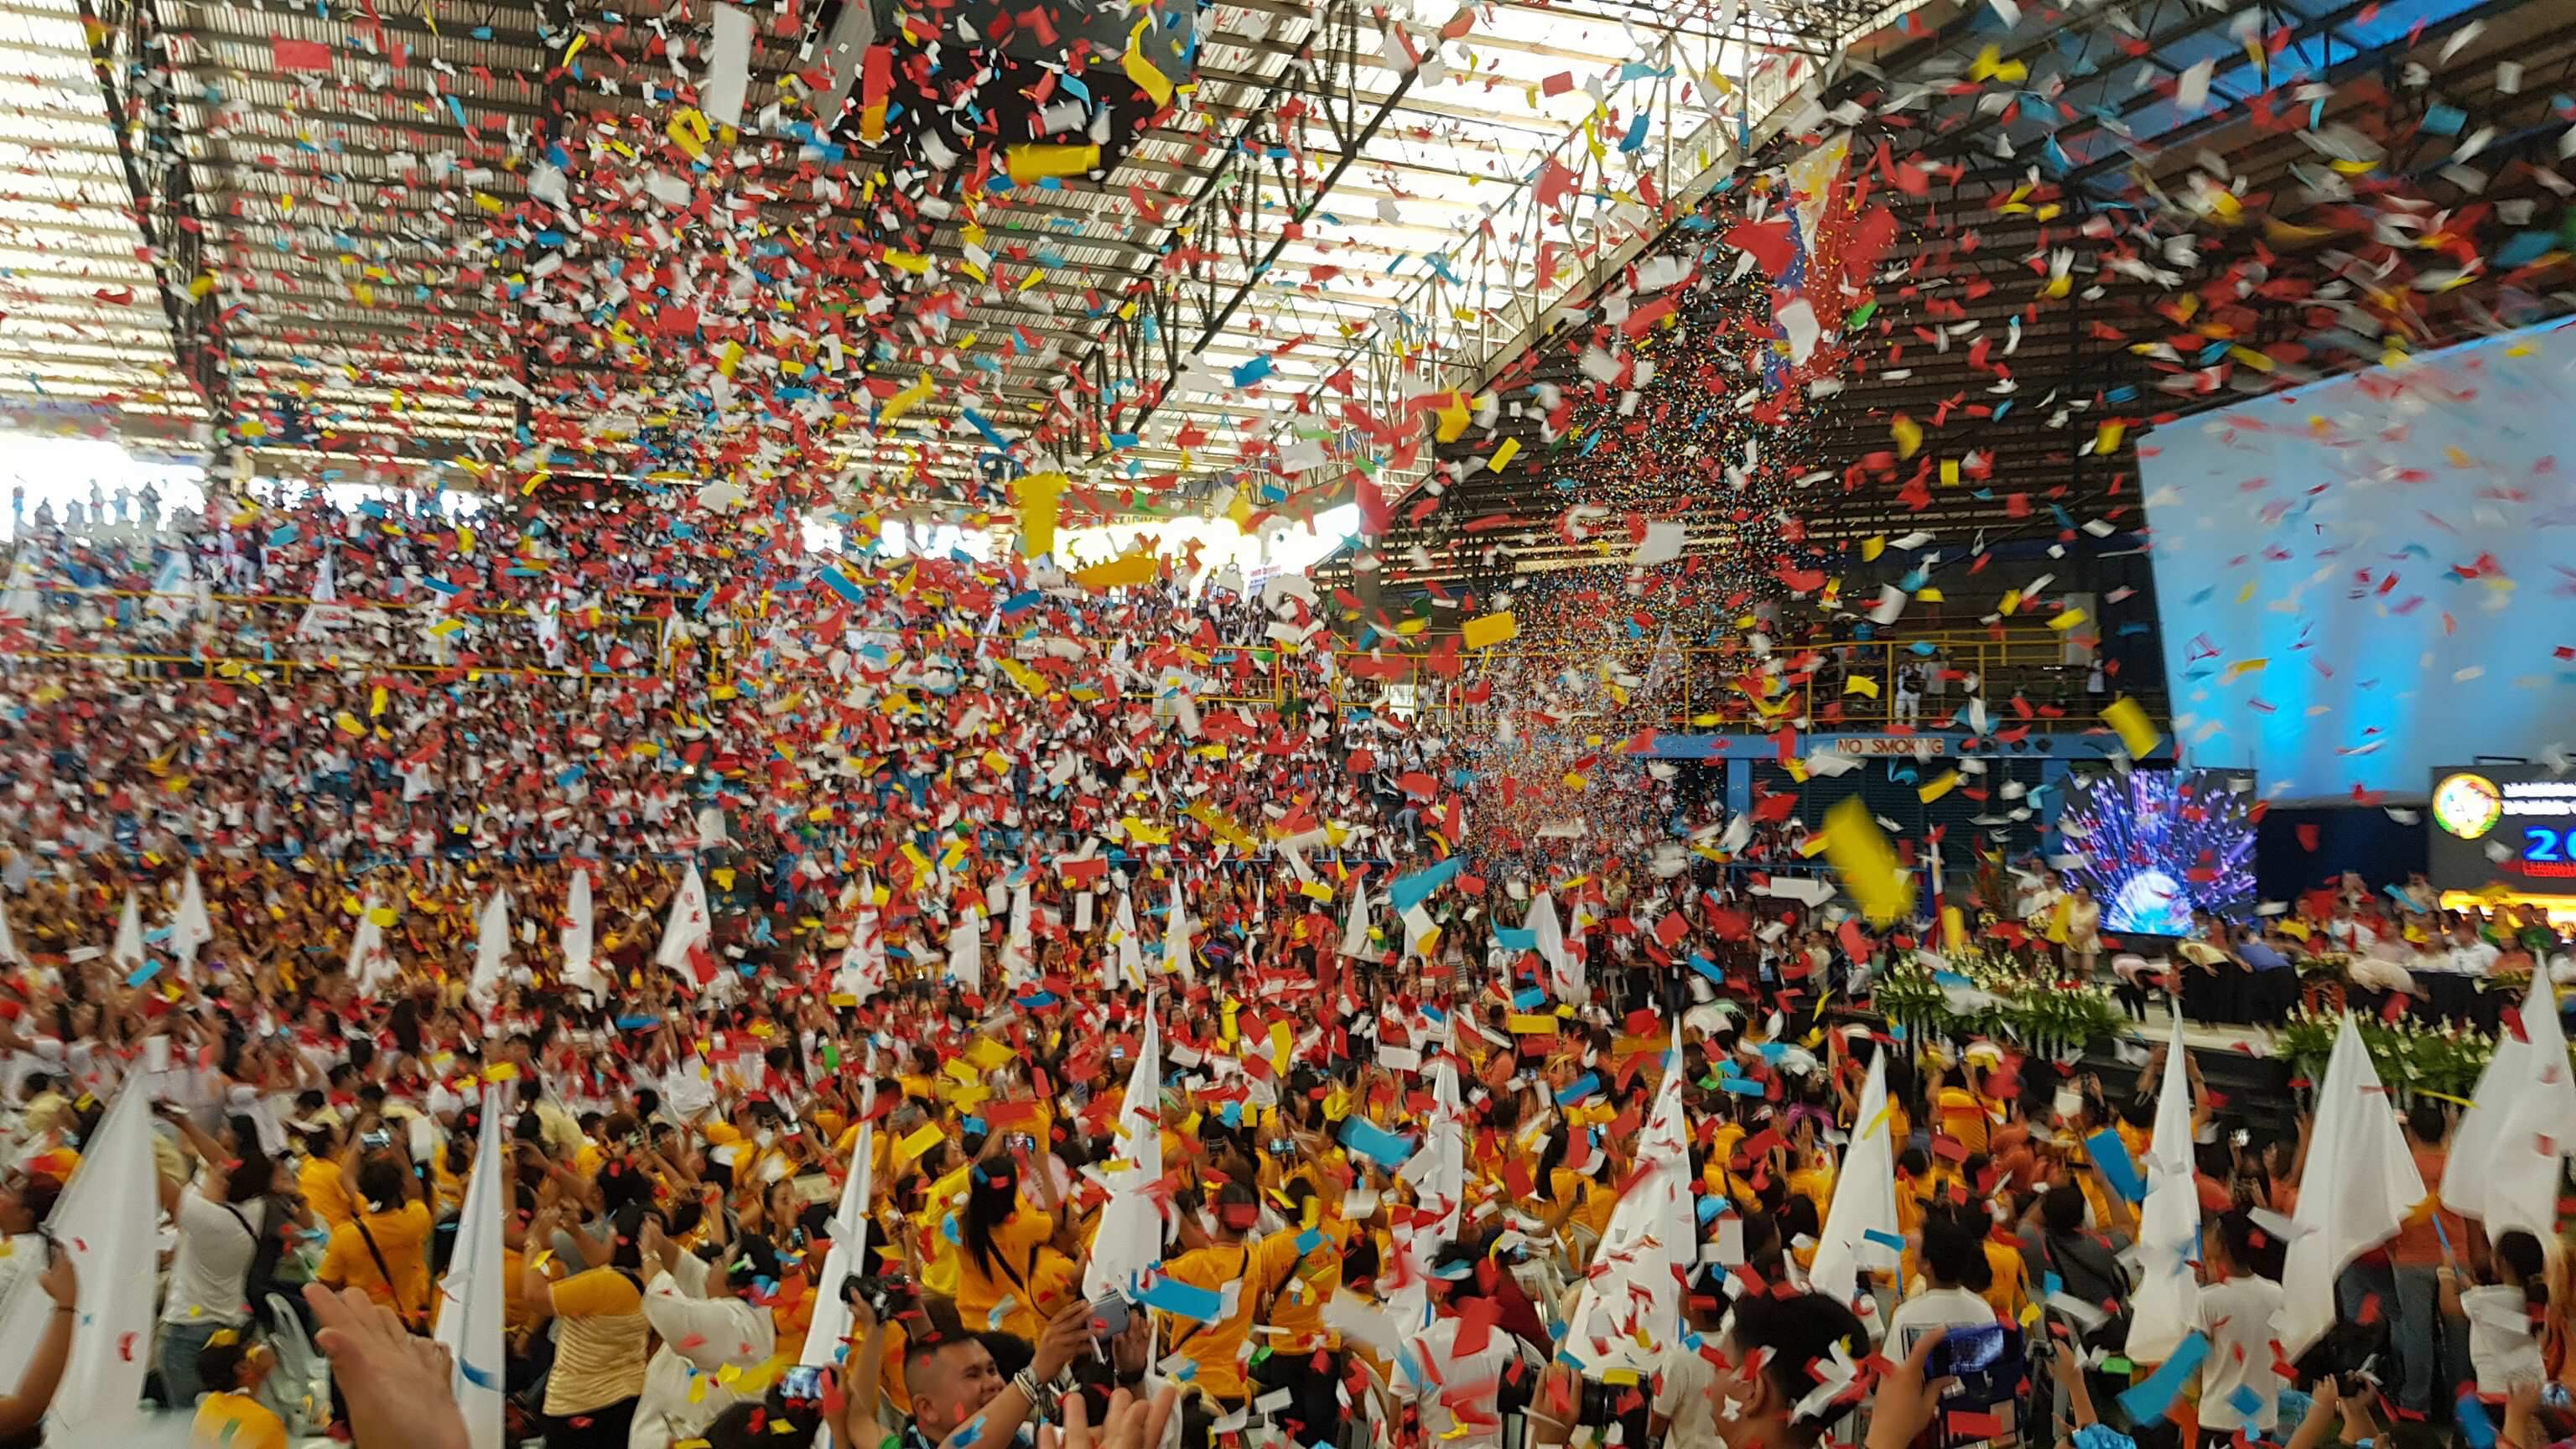 IT'S OFFICIAL. Balloons and confetti fall as DepEd Secretary Leonor Briones declares the NSPC open. Photo by Joseph Enric Dy/Caraga Region